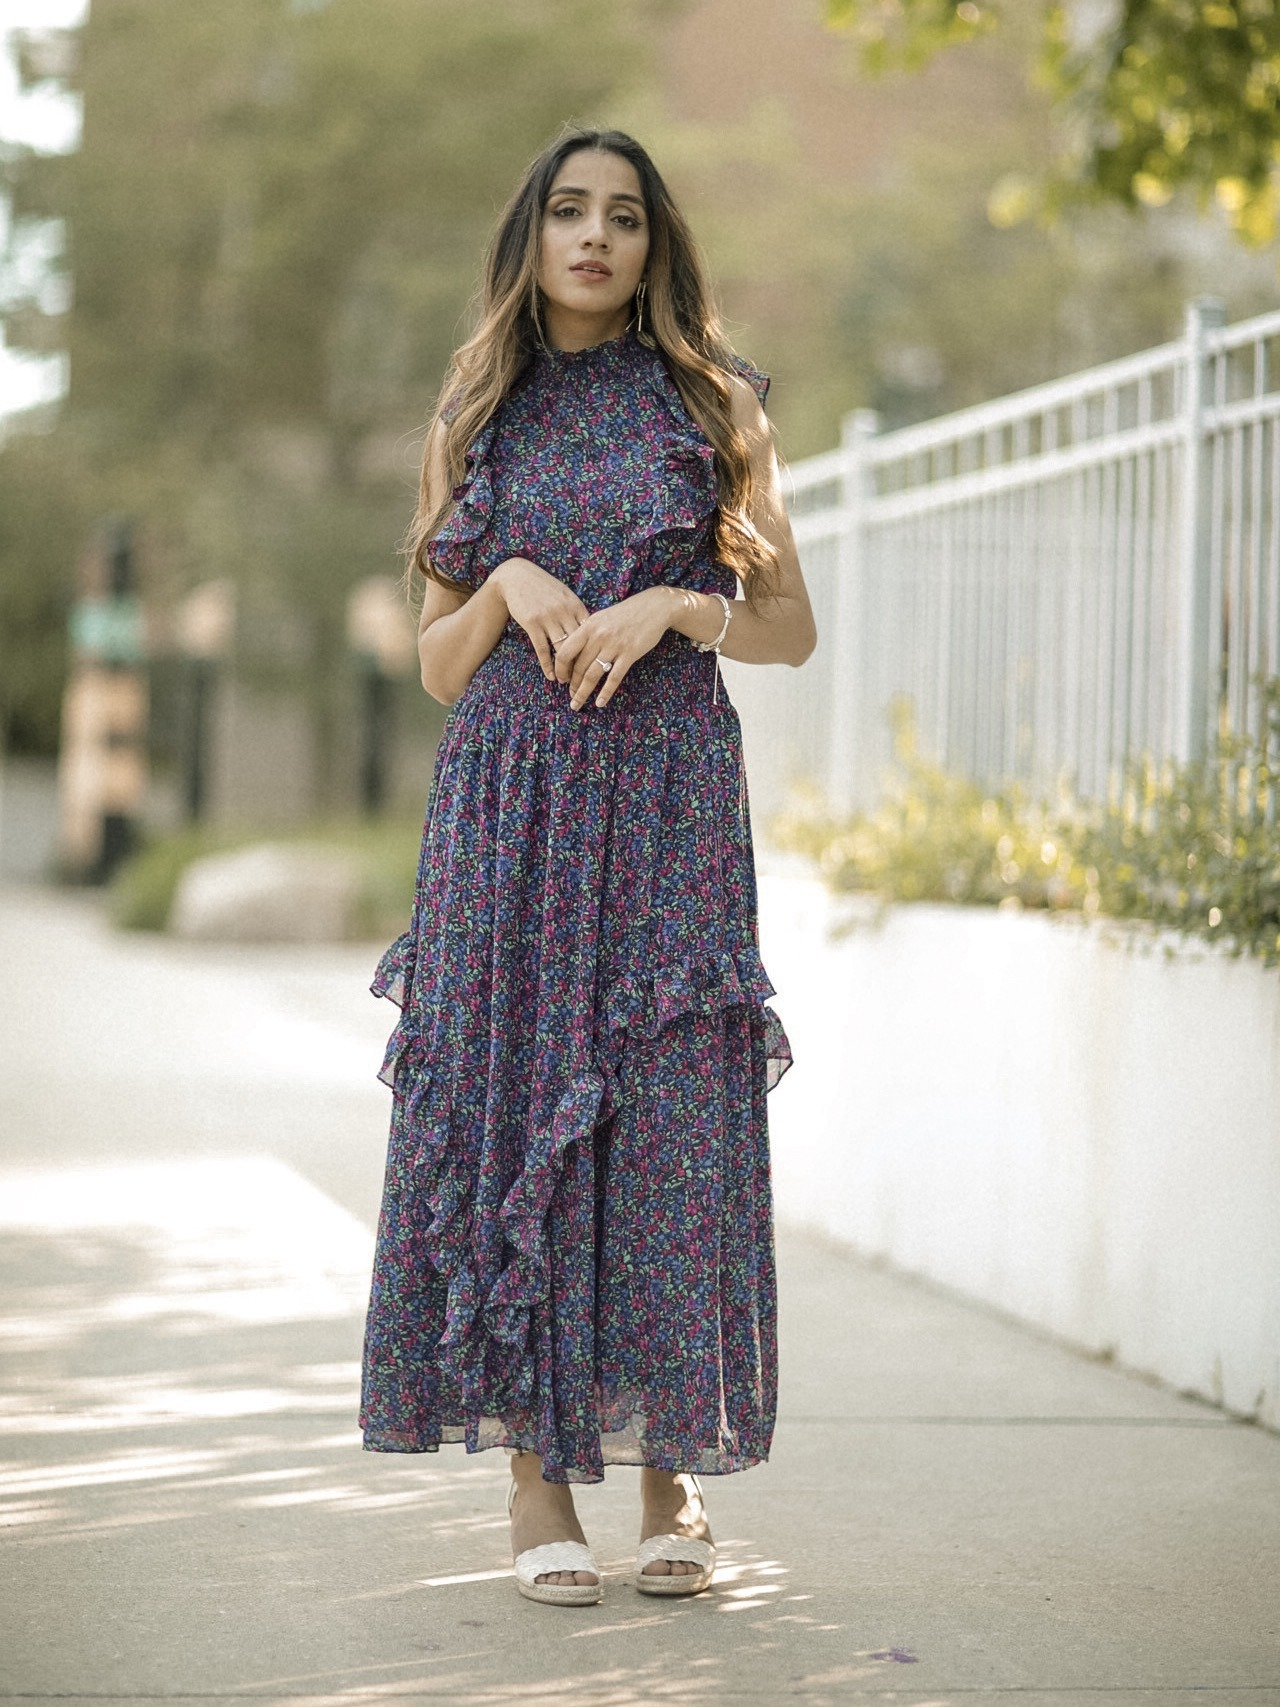 FASHION FAIZA INAM Lulus Midi Dress Maxi Dress Chic Best Summer Fashion Seasonal 7